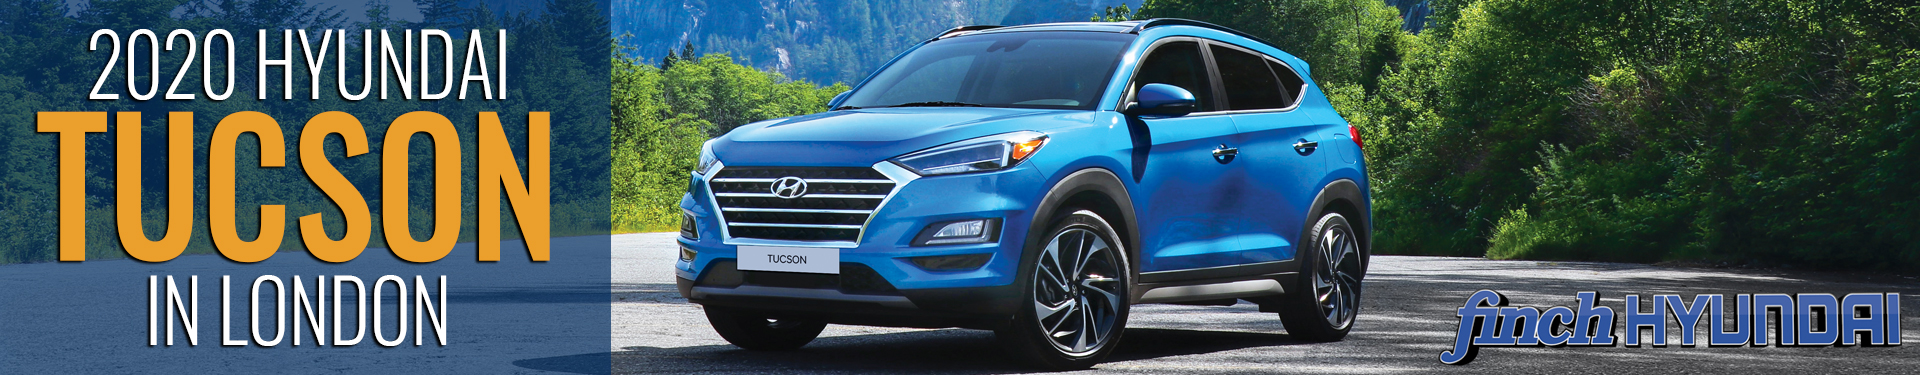 Discover the new 2020 Hyundai Tucson in London Ontario, Sarnia, Stratford & Woodstock from Finch Hyundai, new SUV in London